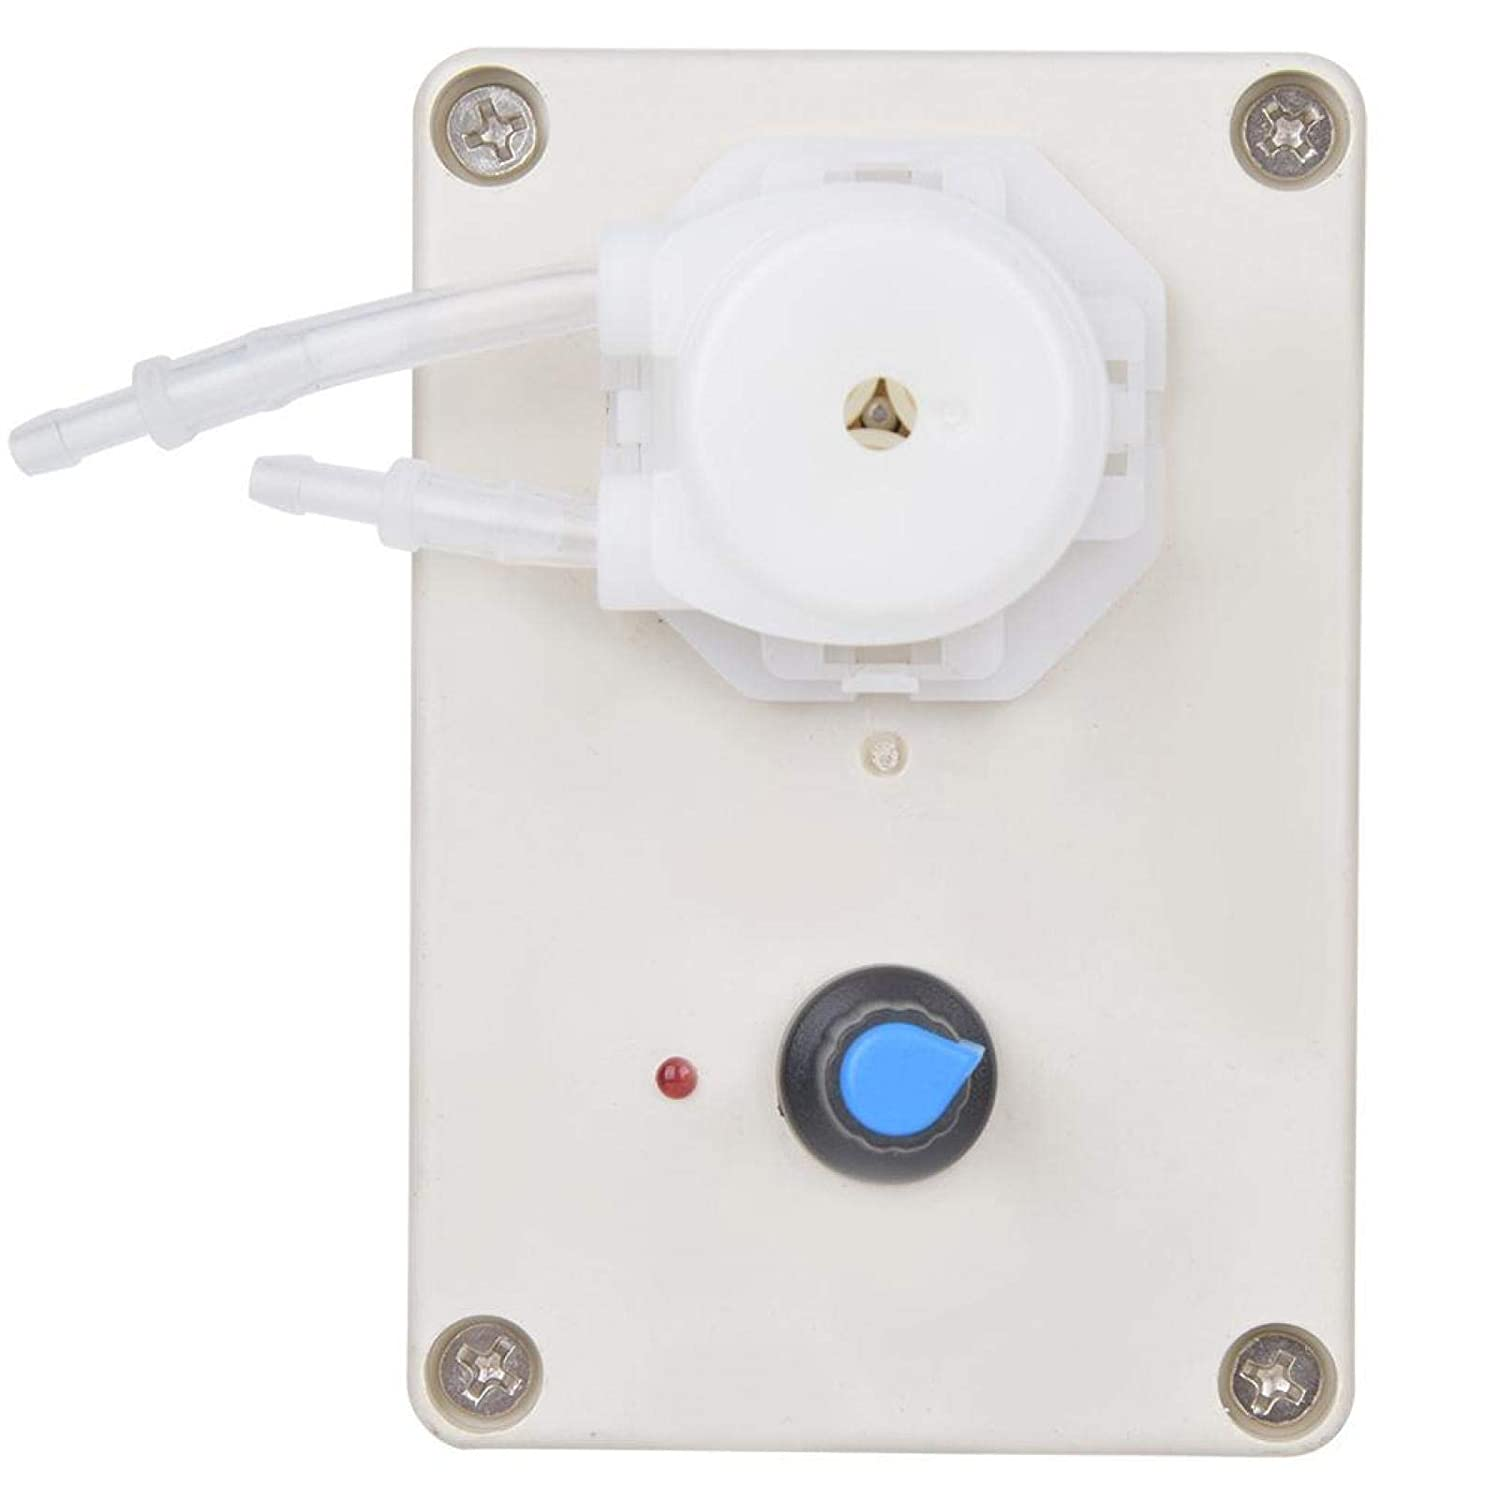 Max 78% OFF Dosing Pump 50 60Hz Peristaltic Biochemical An for Liquid Sale special price